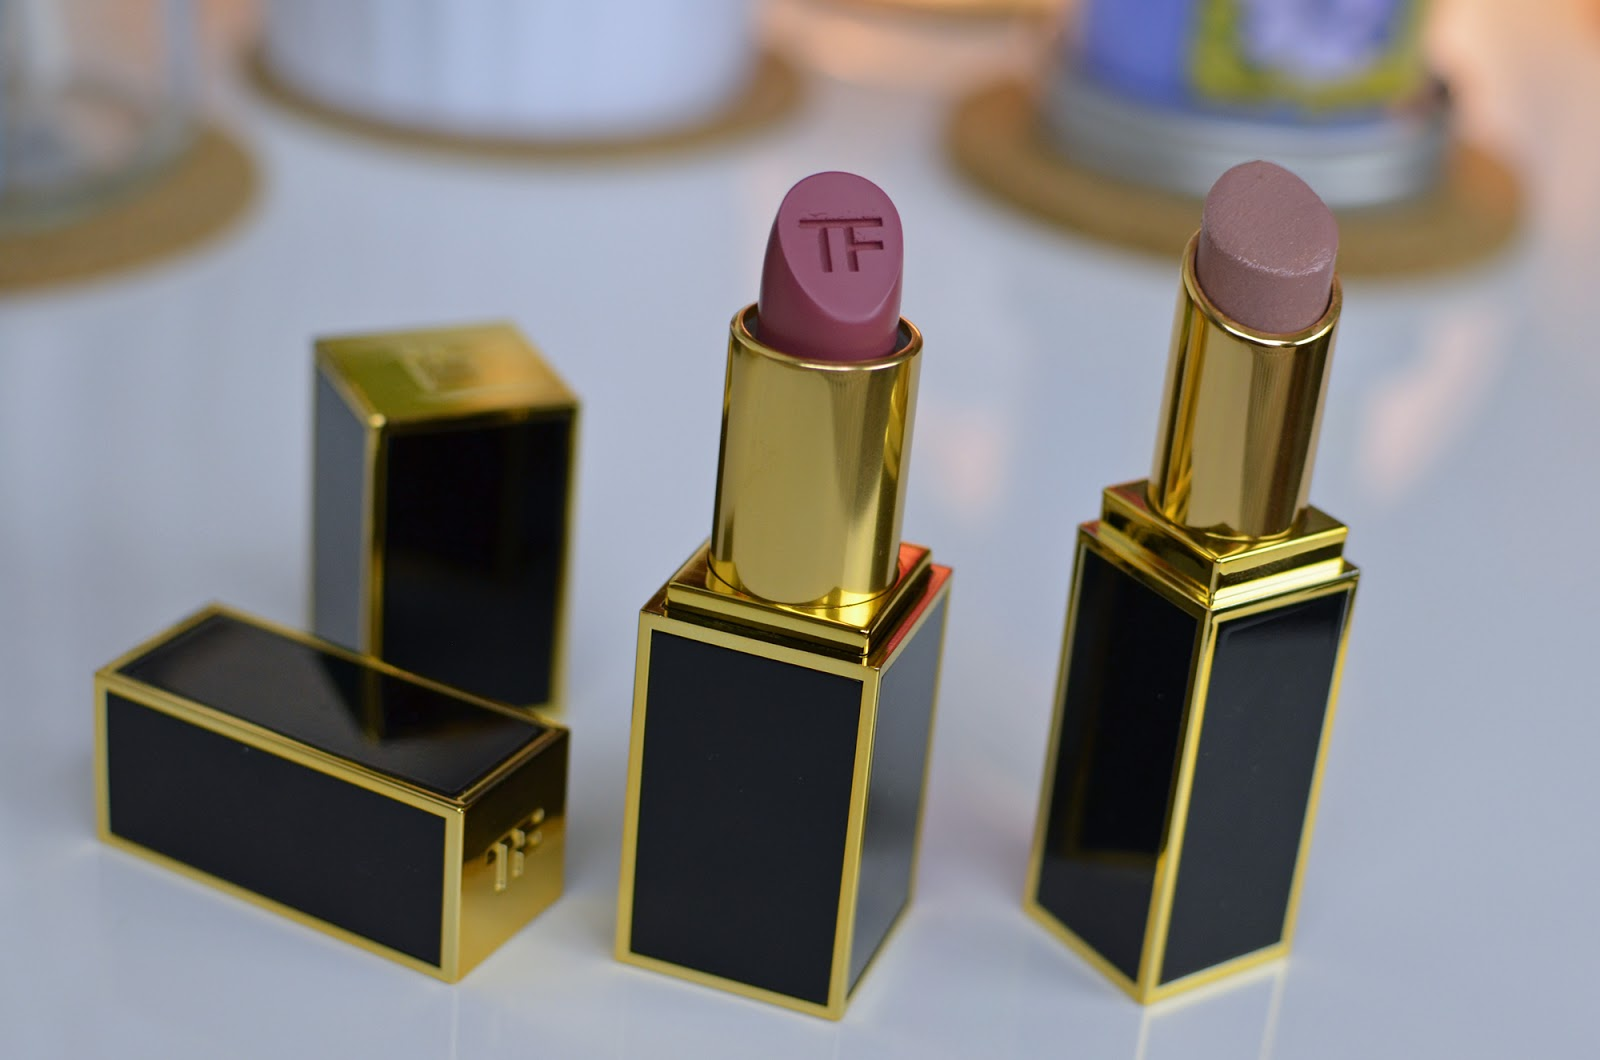 Tom Ford Lip Color Matte in Pussycat and Tom Ford Lip Color Shine in Bare